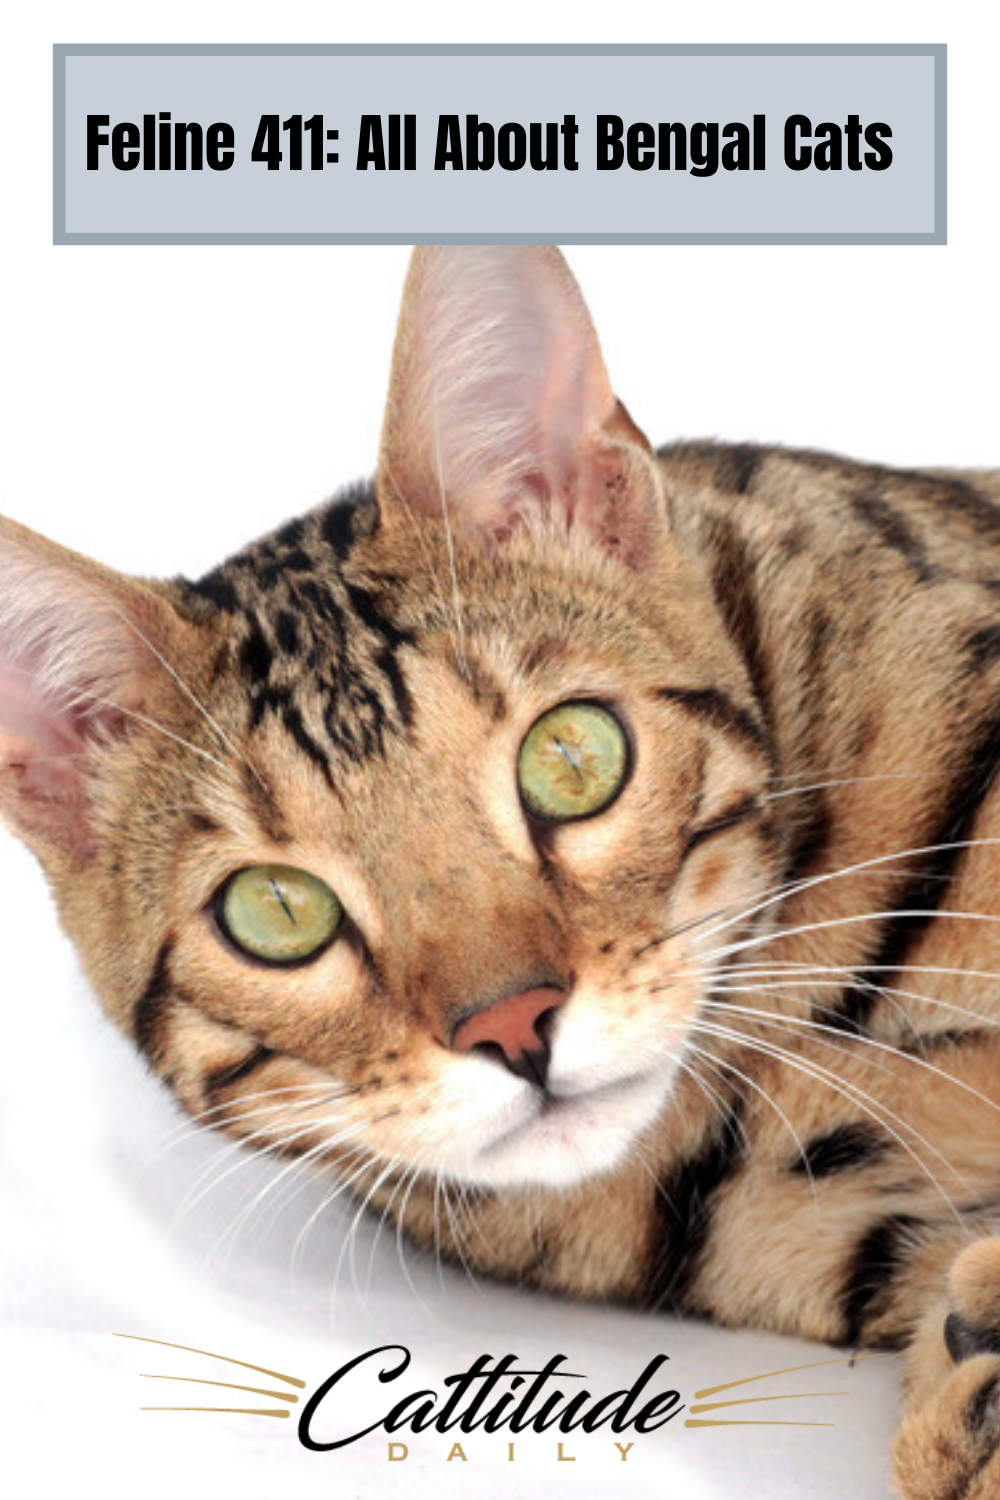 Feline 411 All About Bengal Cats In 2020 Bengal Cat Bengal Cat Facts Popular Cat Breeds